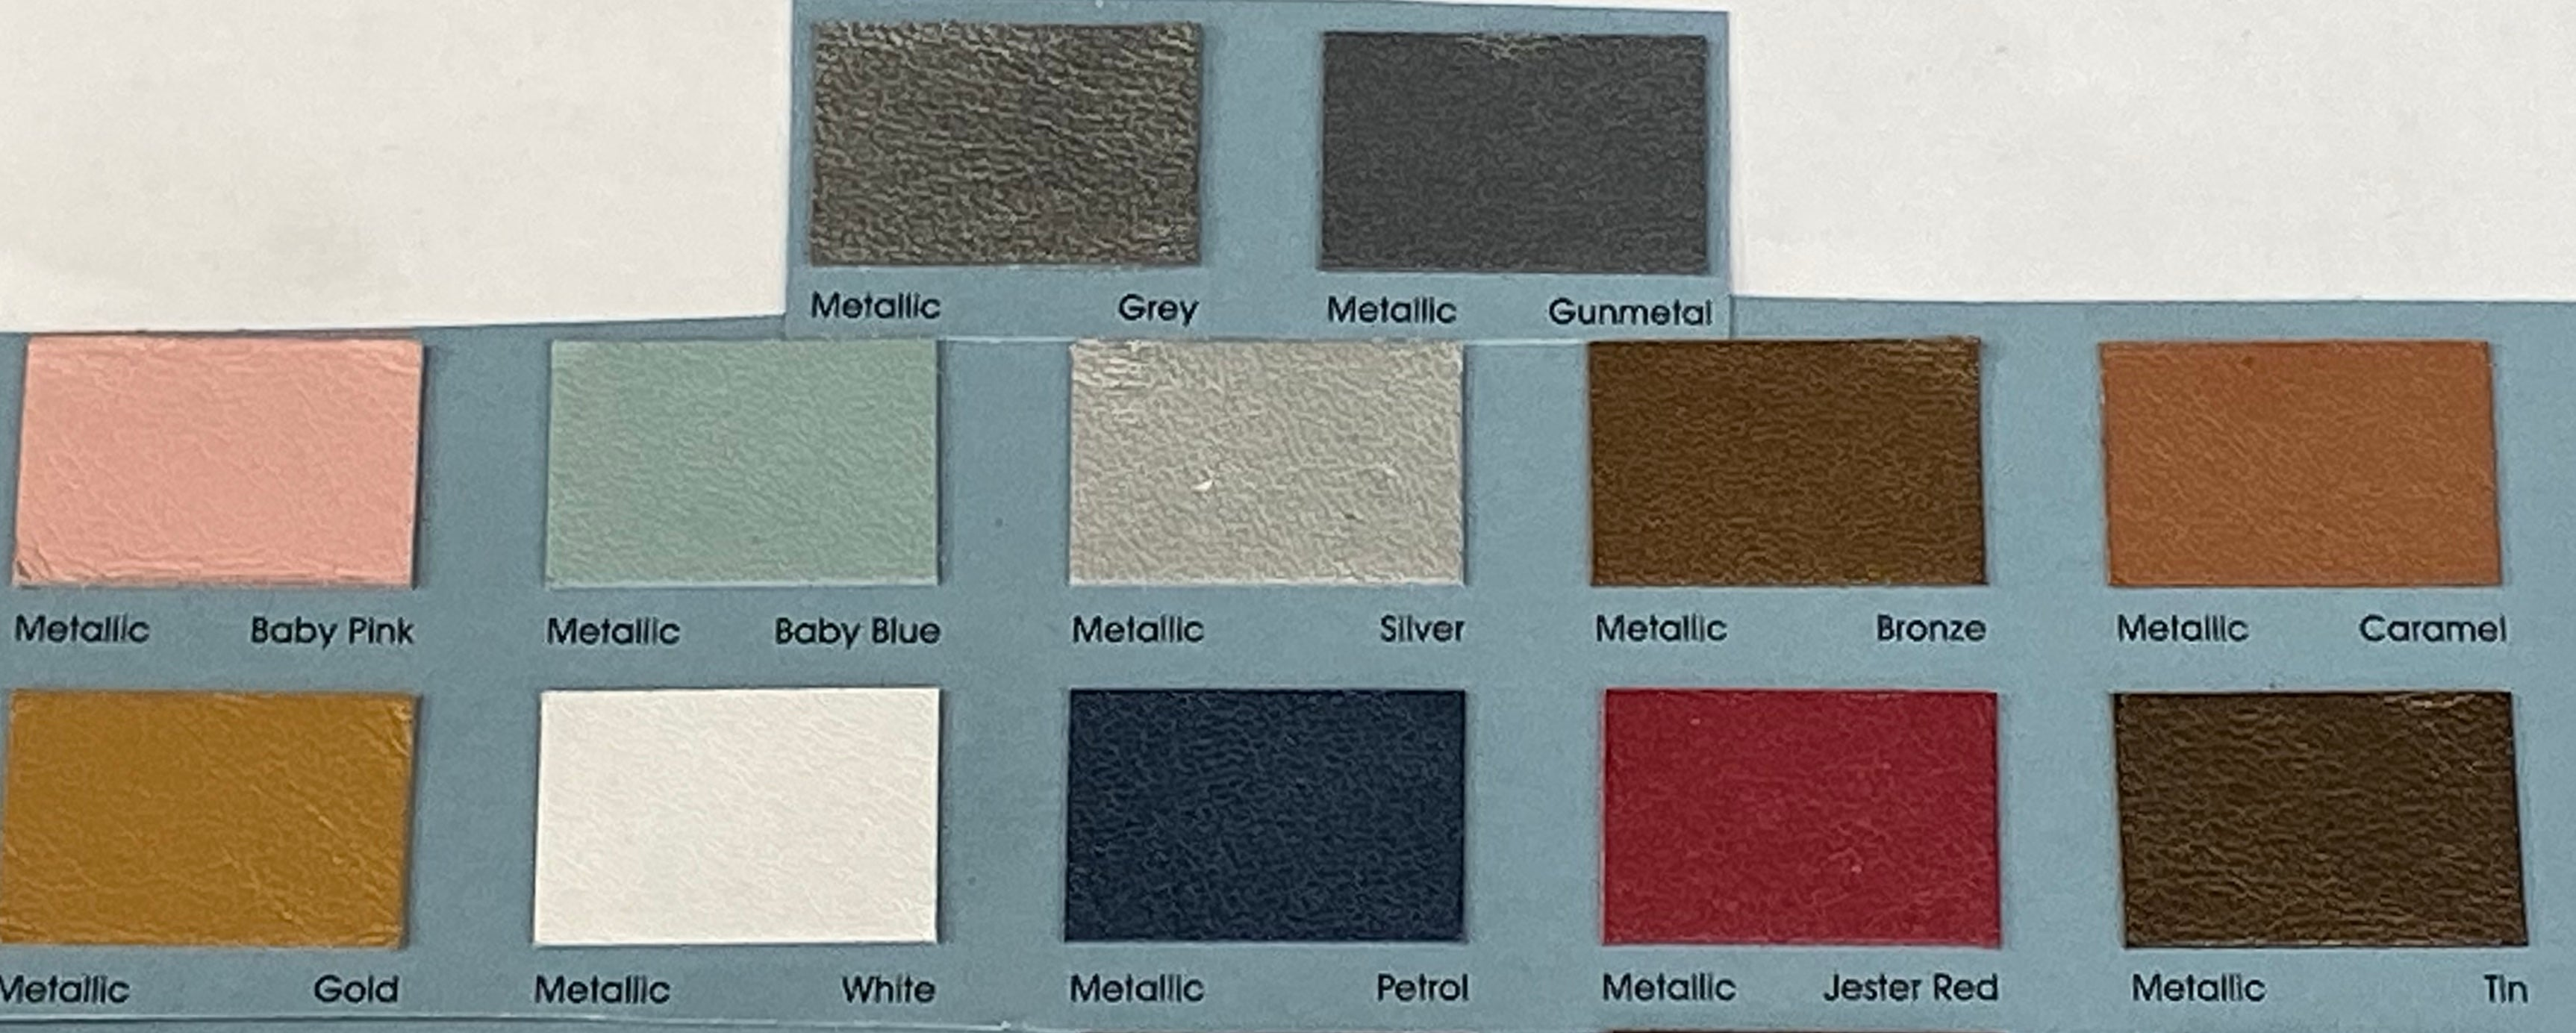 Metallic Petrol Blue Leather Skin: Italian Lamb Nappa (0.6-0.7 mm). Perfect for Clothing,  Leather Jackets, Leather Crafts, Leather Handbags